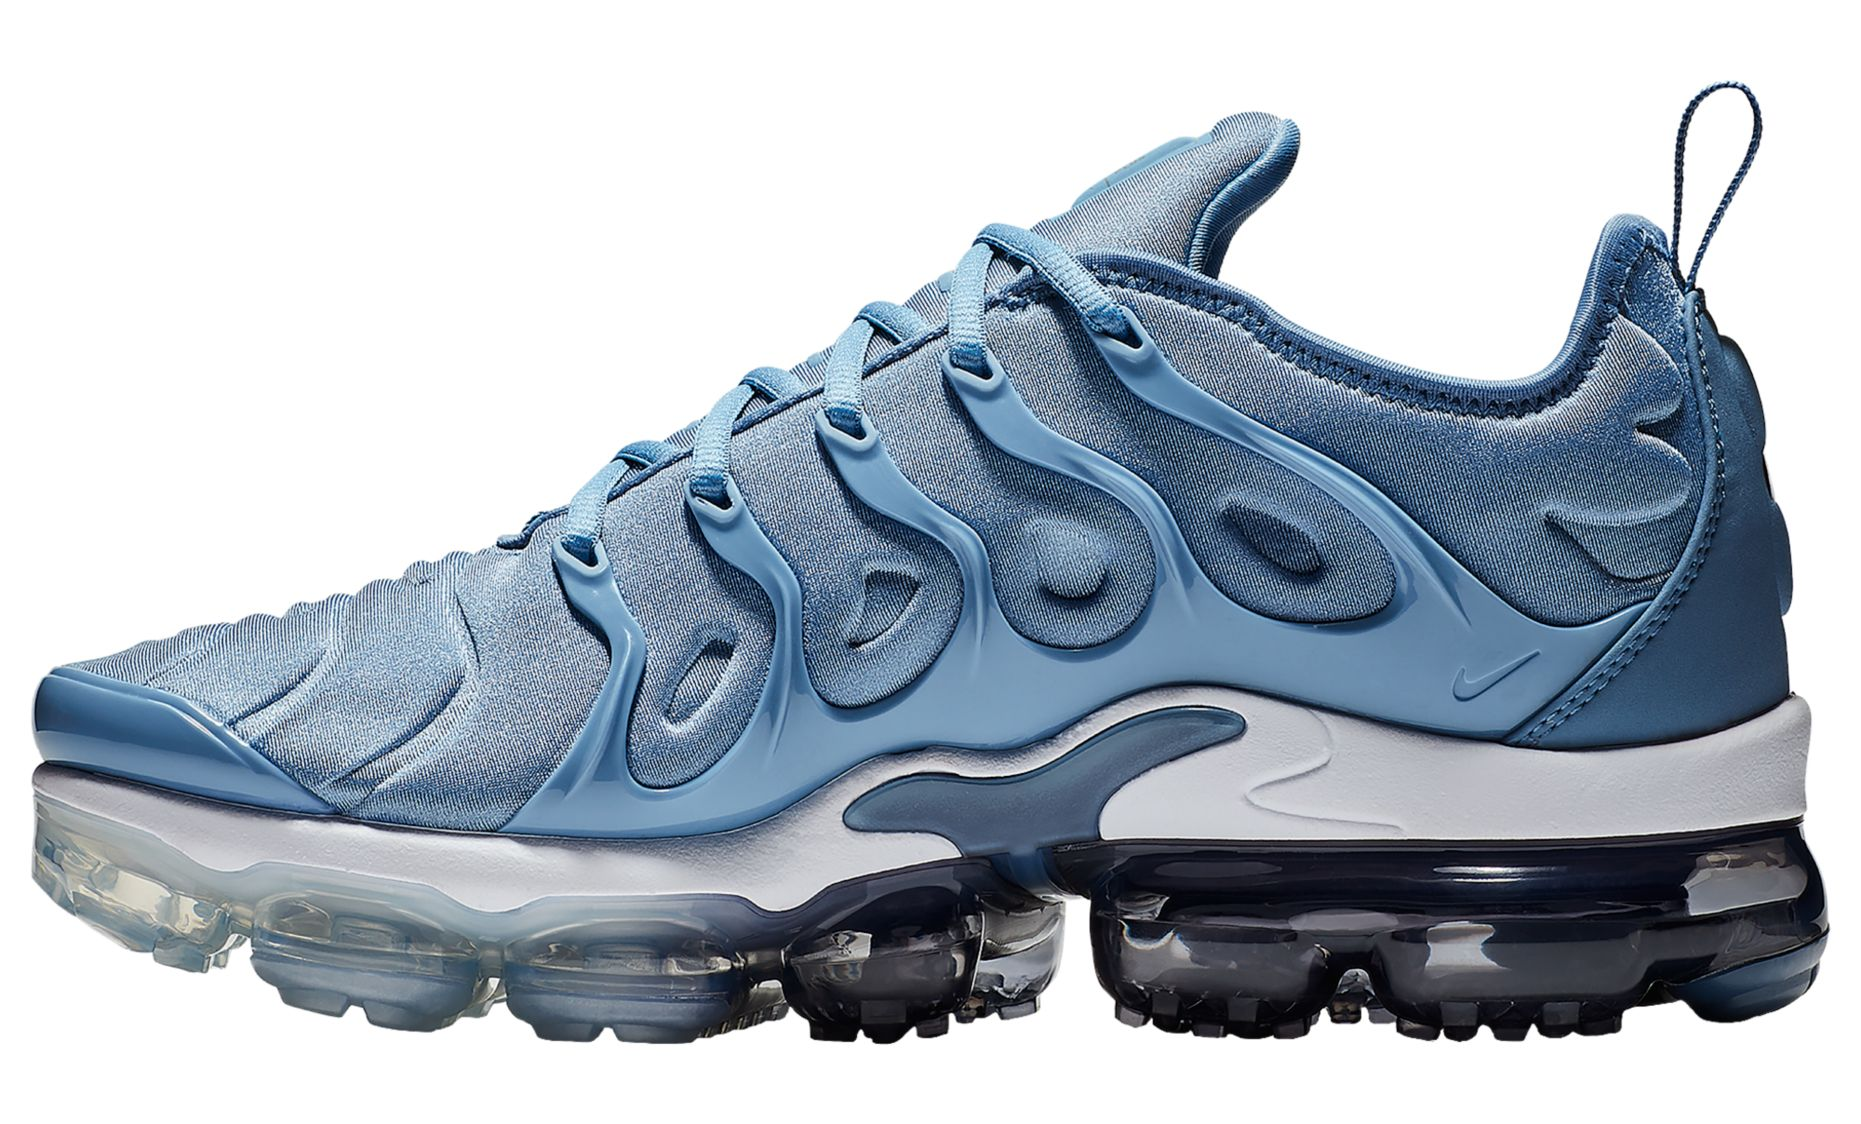 fc817d48e0 vm+ blue. Next. Orange and Cream Dreaming with the Nike Air Vapormax Plus  Wmns Creamsicle